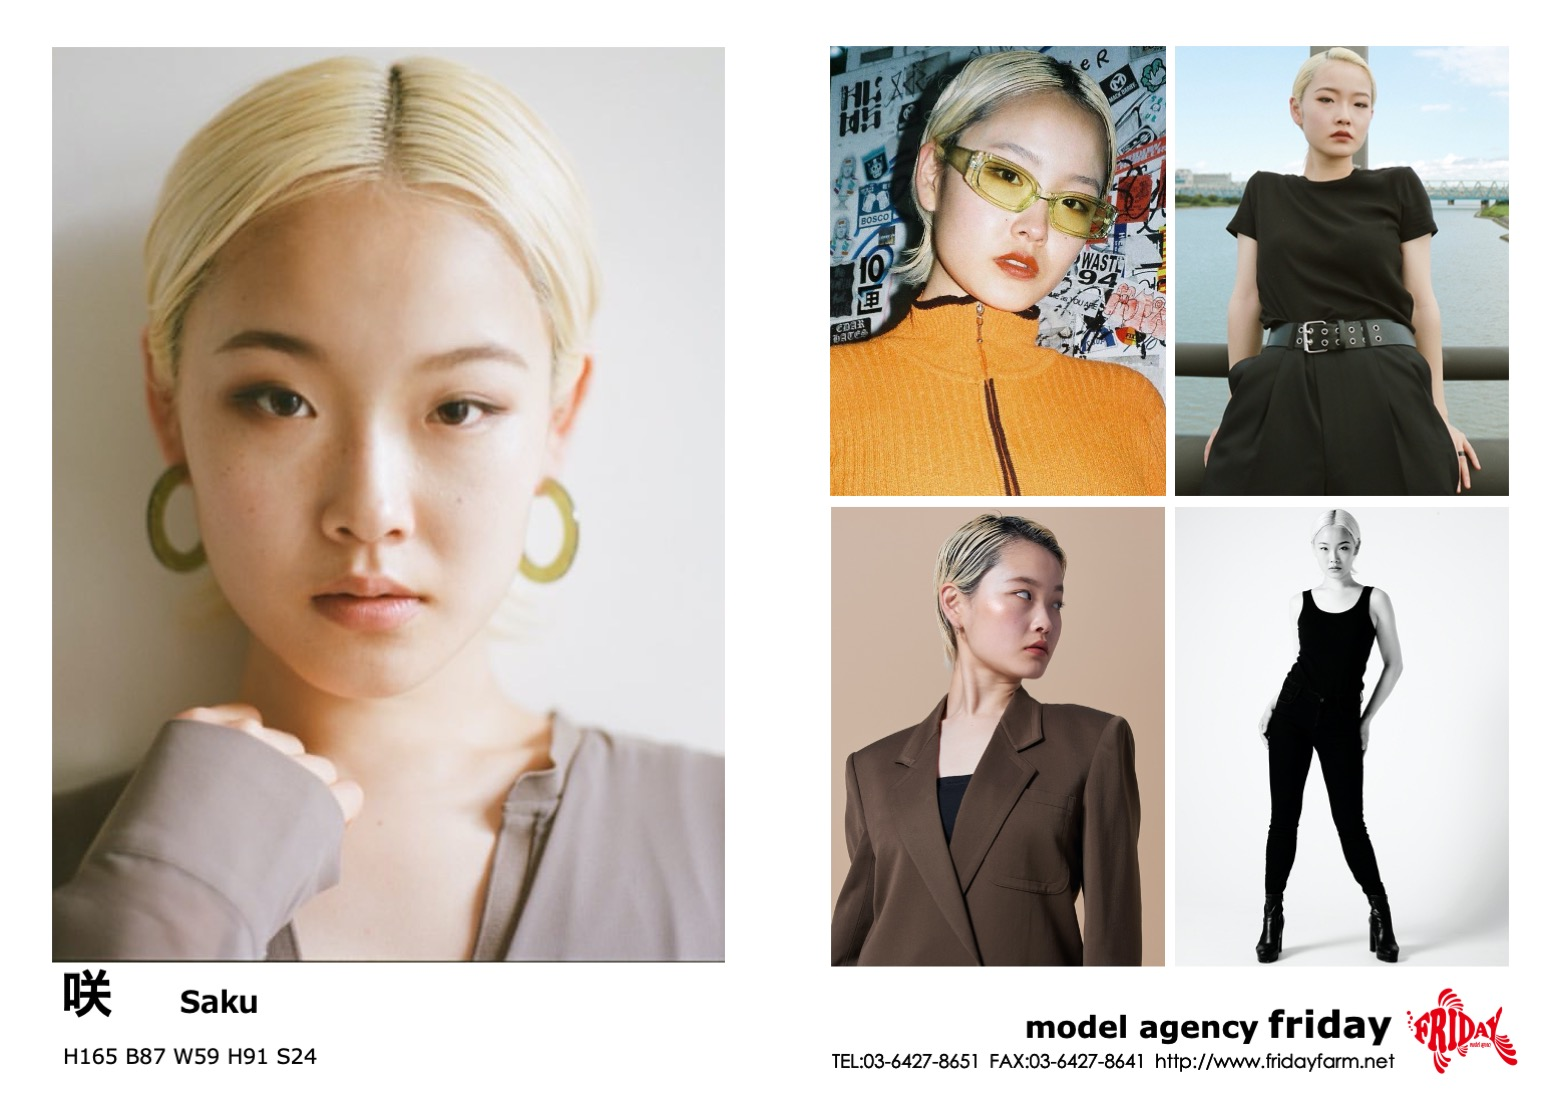 咲 - Saku | model agency friday